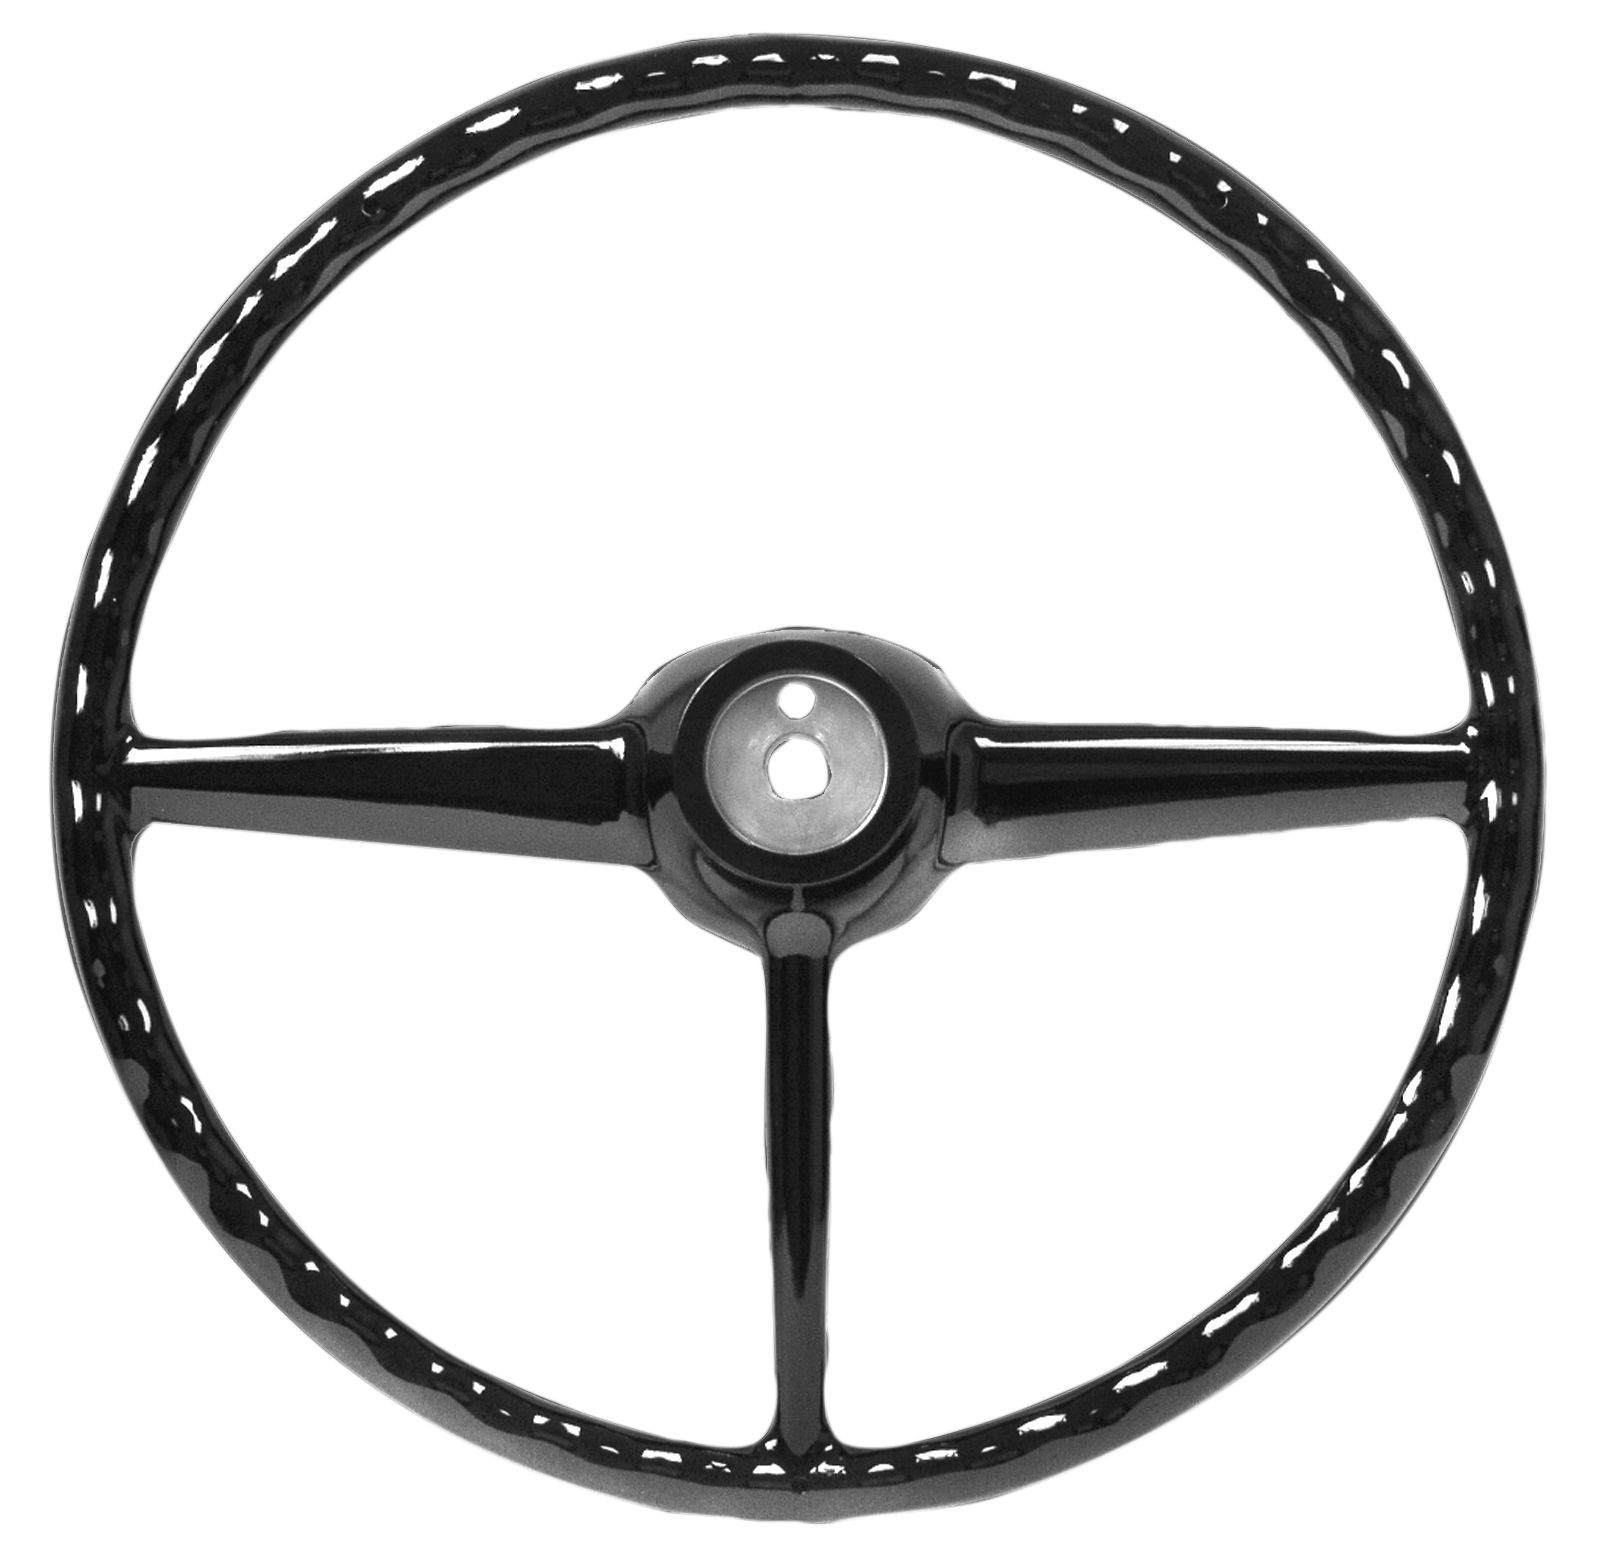 1947-53 GM Truck steering wheel